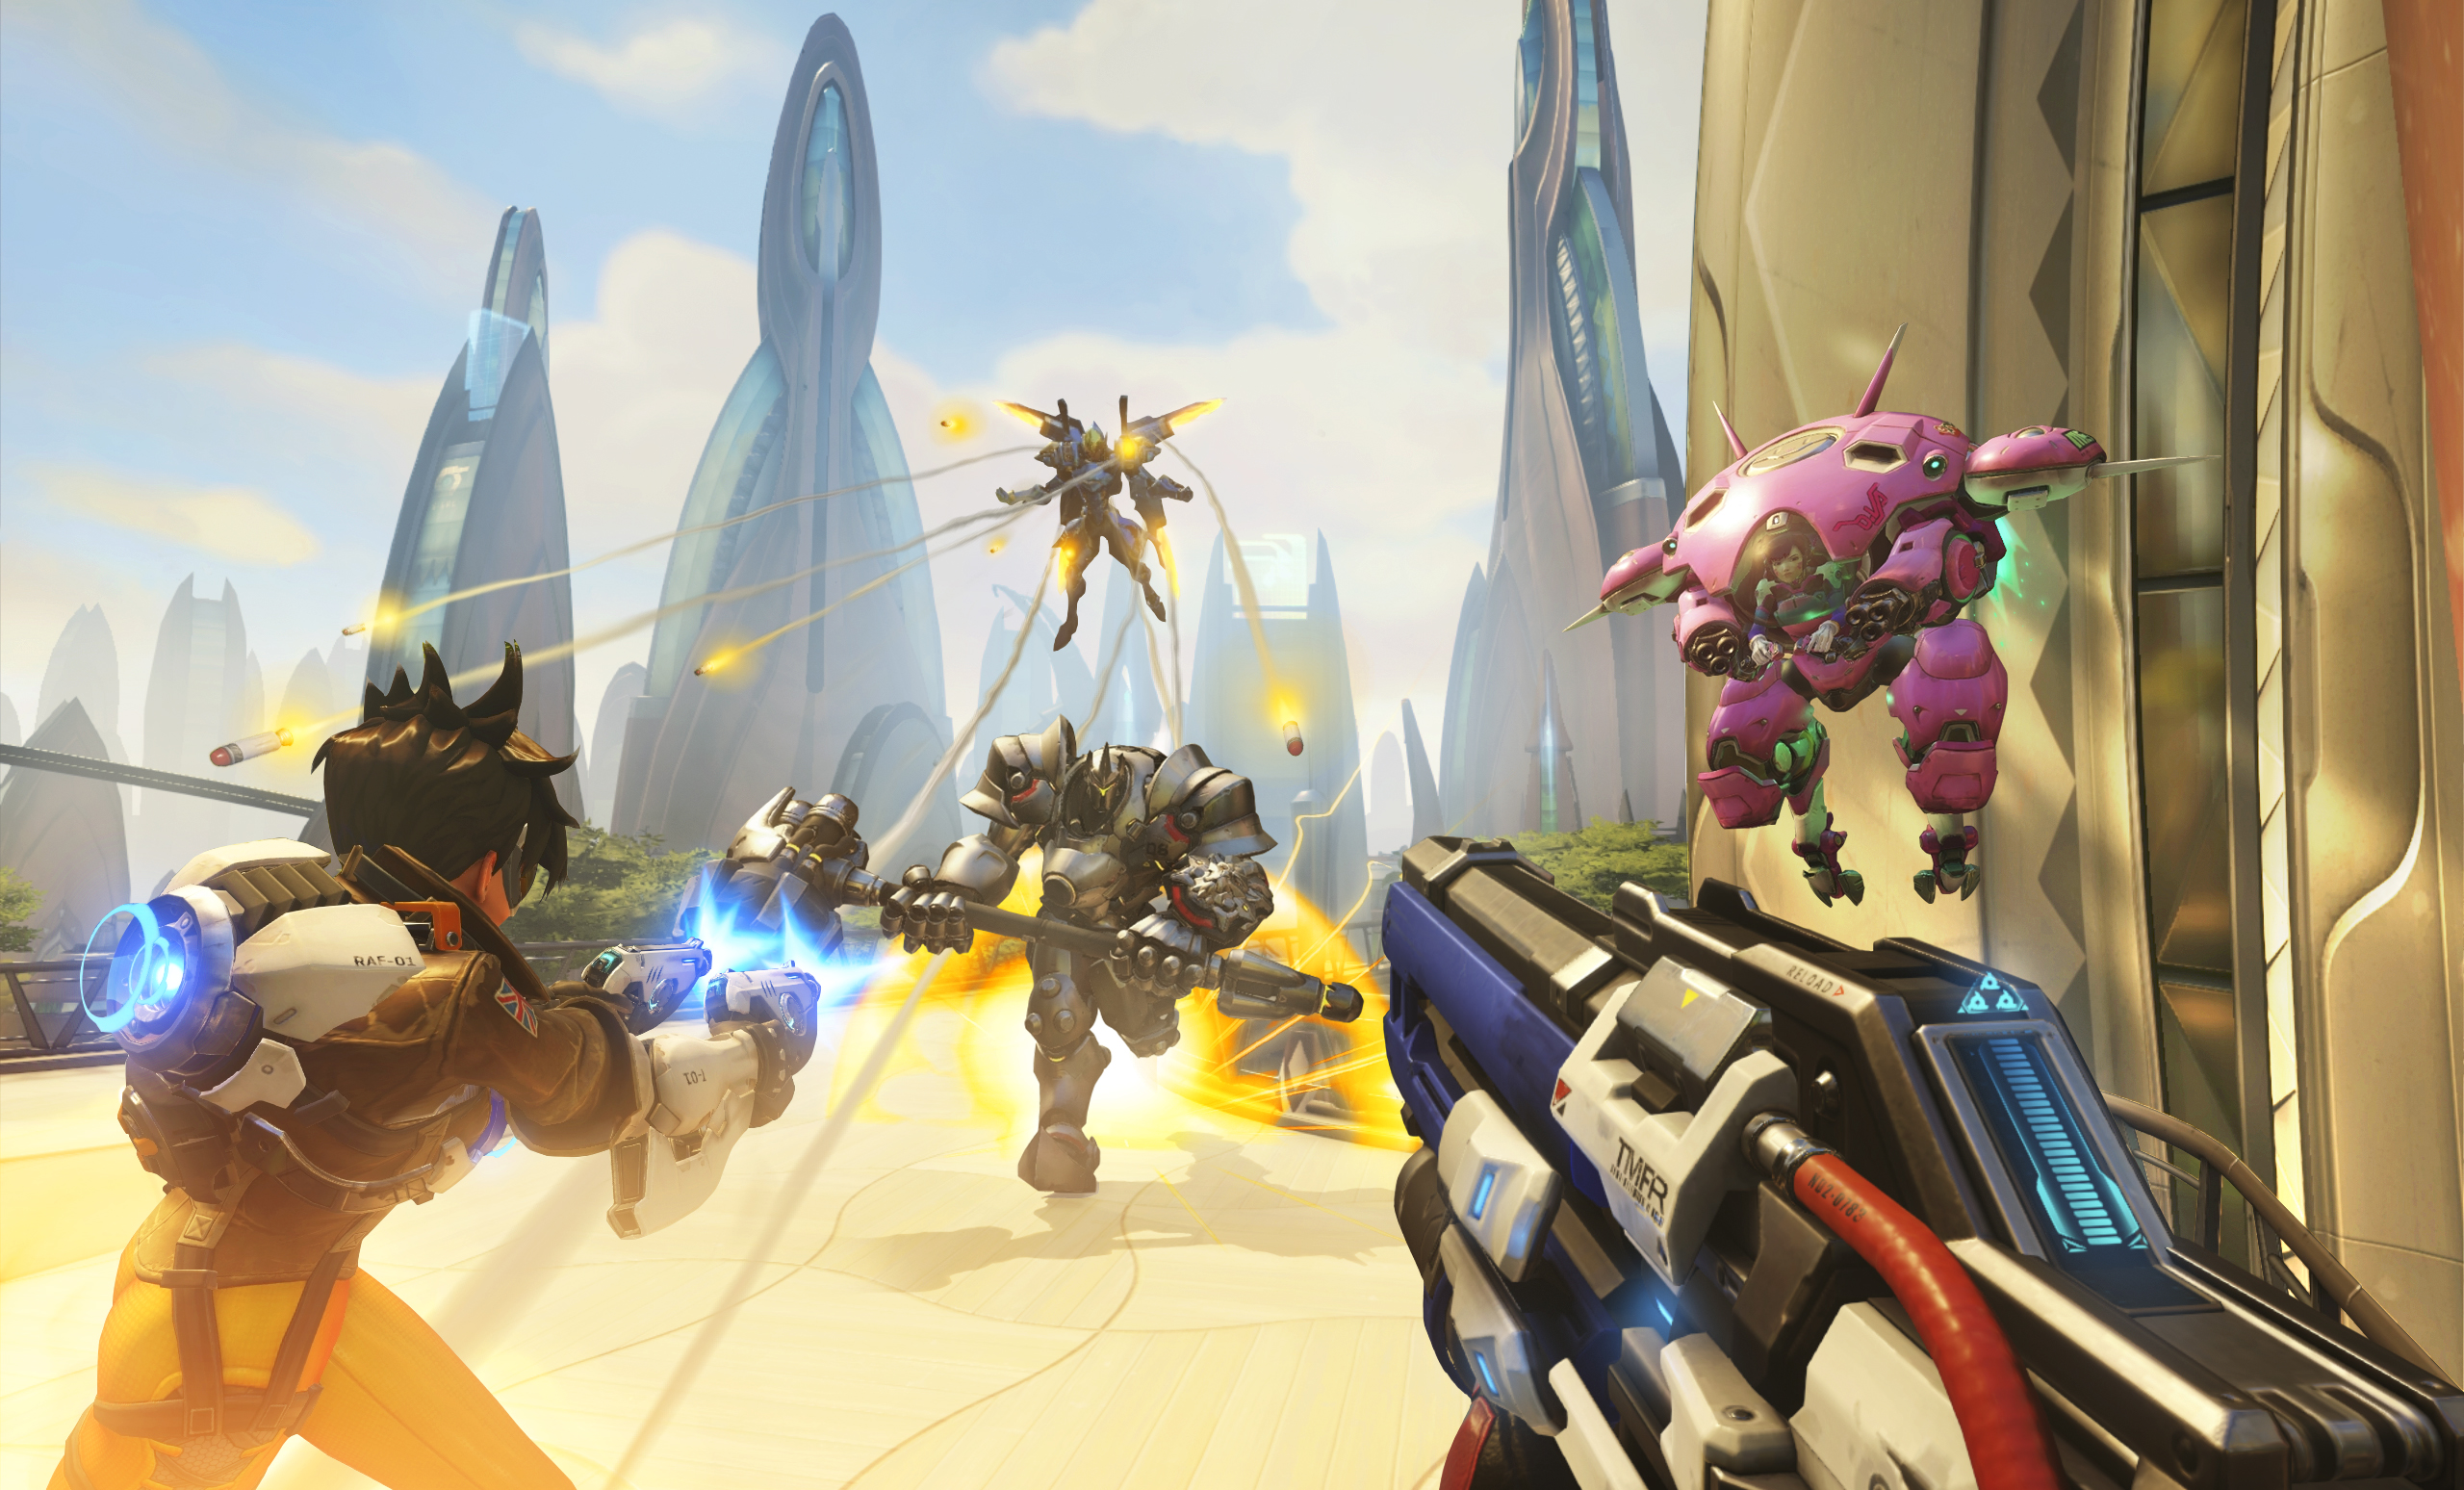 Overwatch devs discuss why the game is coming to Switch, explain the lack of cross-progression